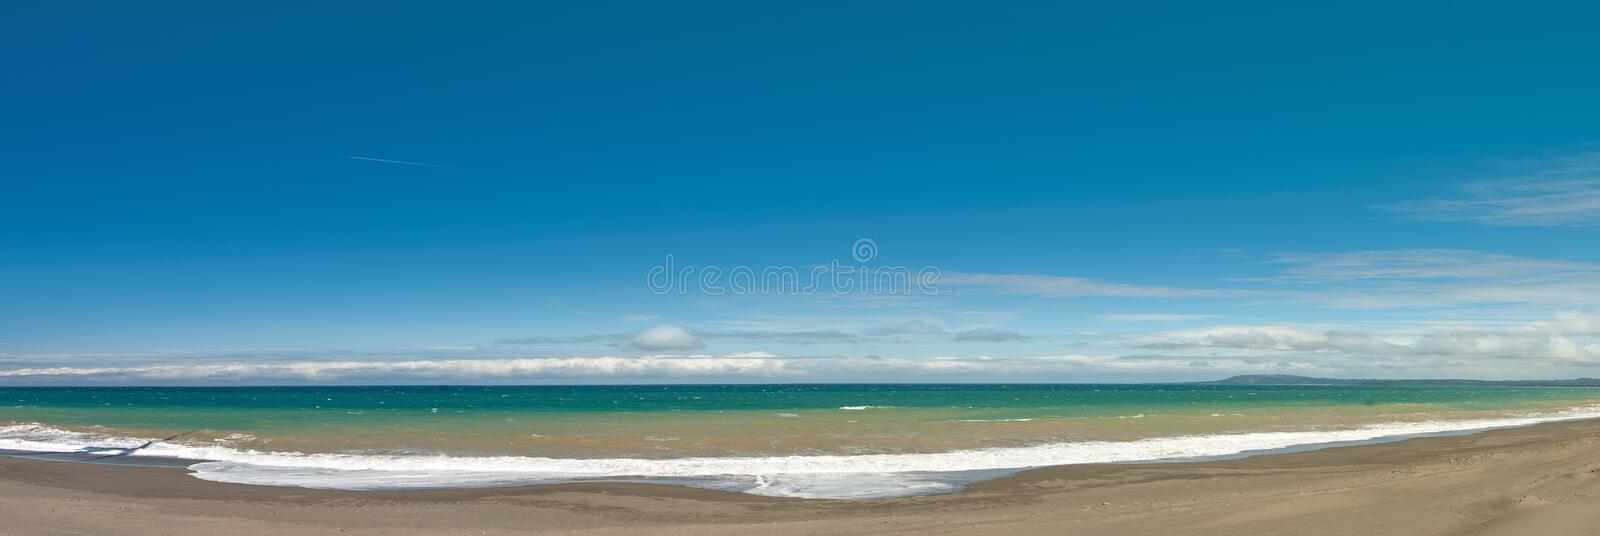 Long and empty ocean coast beach panoramic view background. With blue sky and sea waves royalty free stock photo